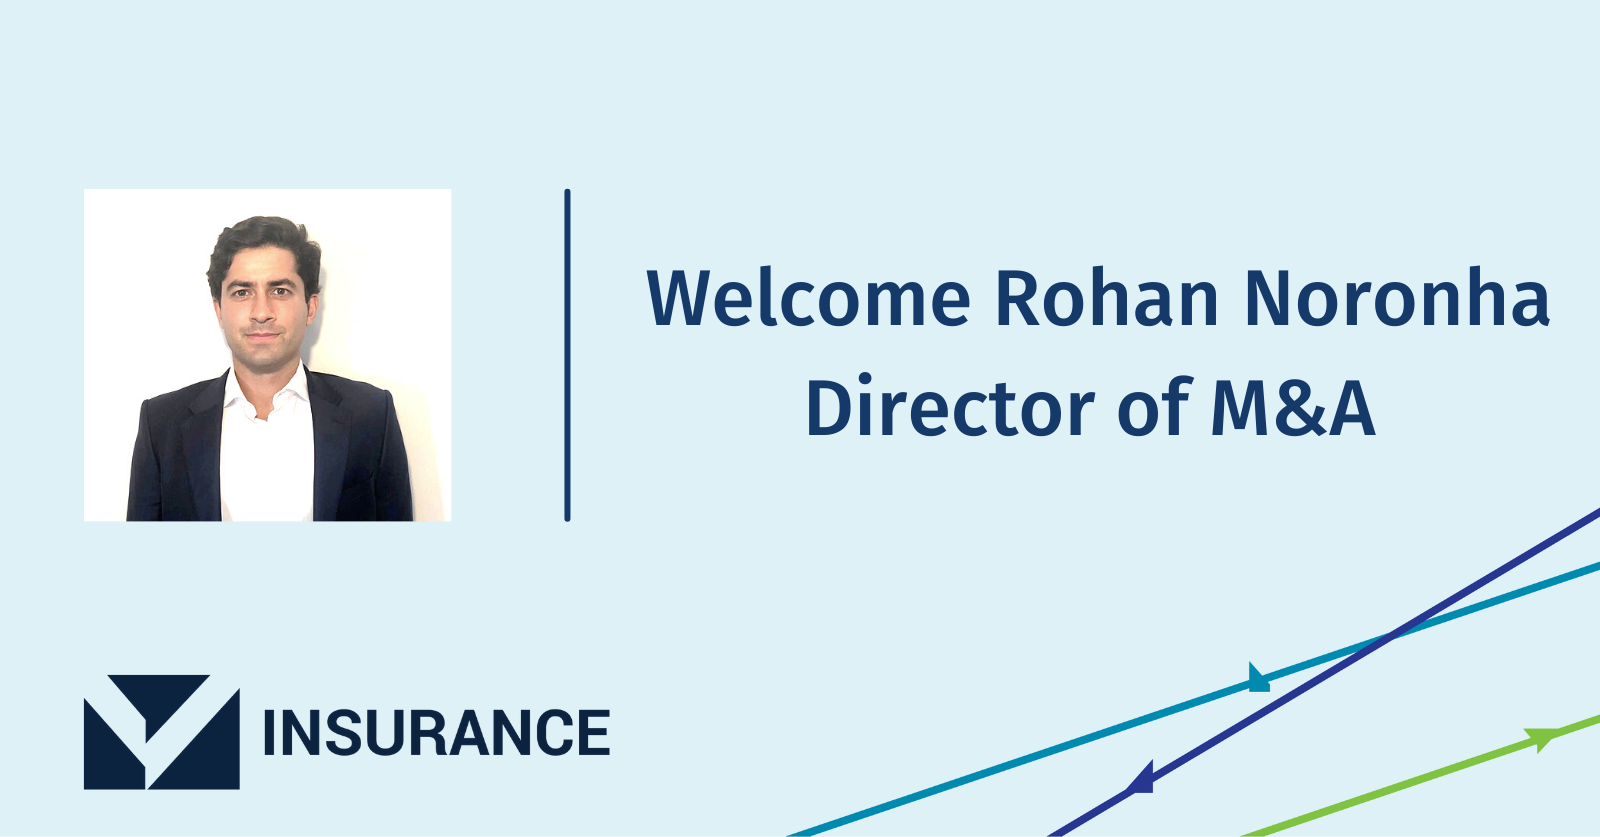 Volaris Insurance Welcomes Rohan Noronha as Director of M&A